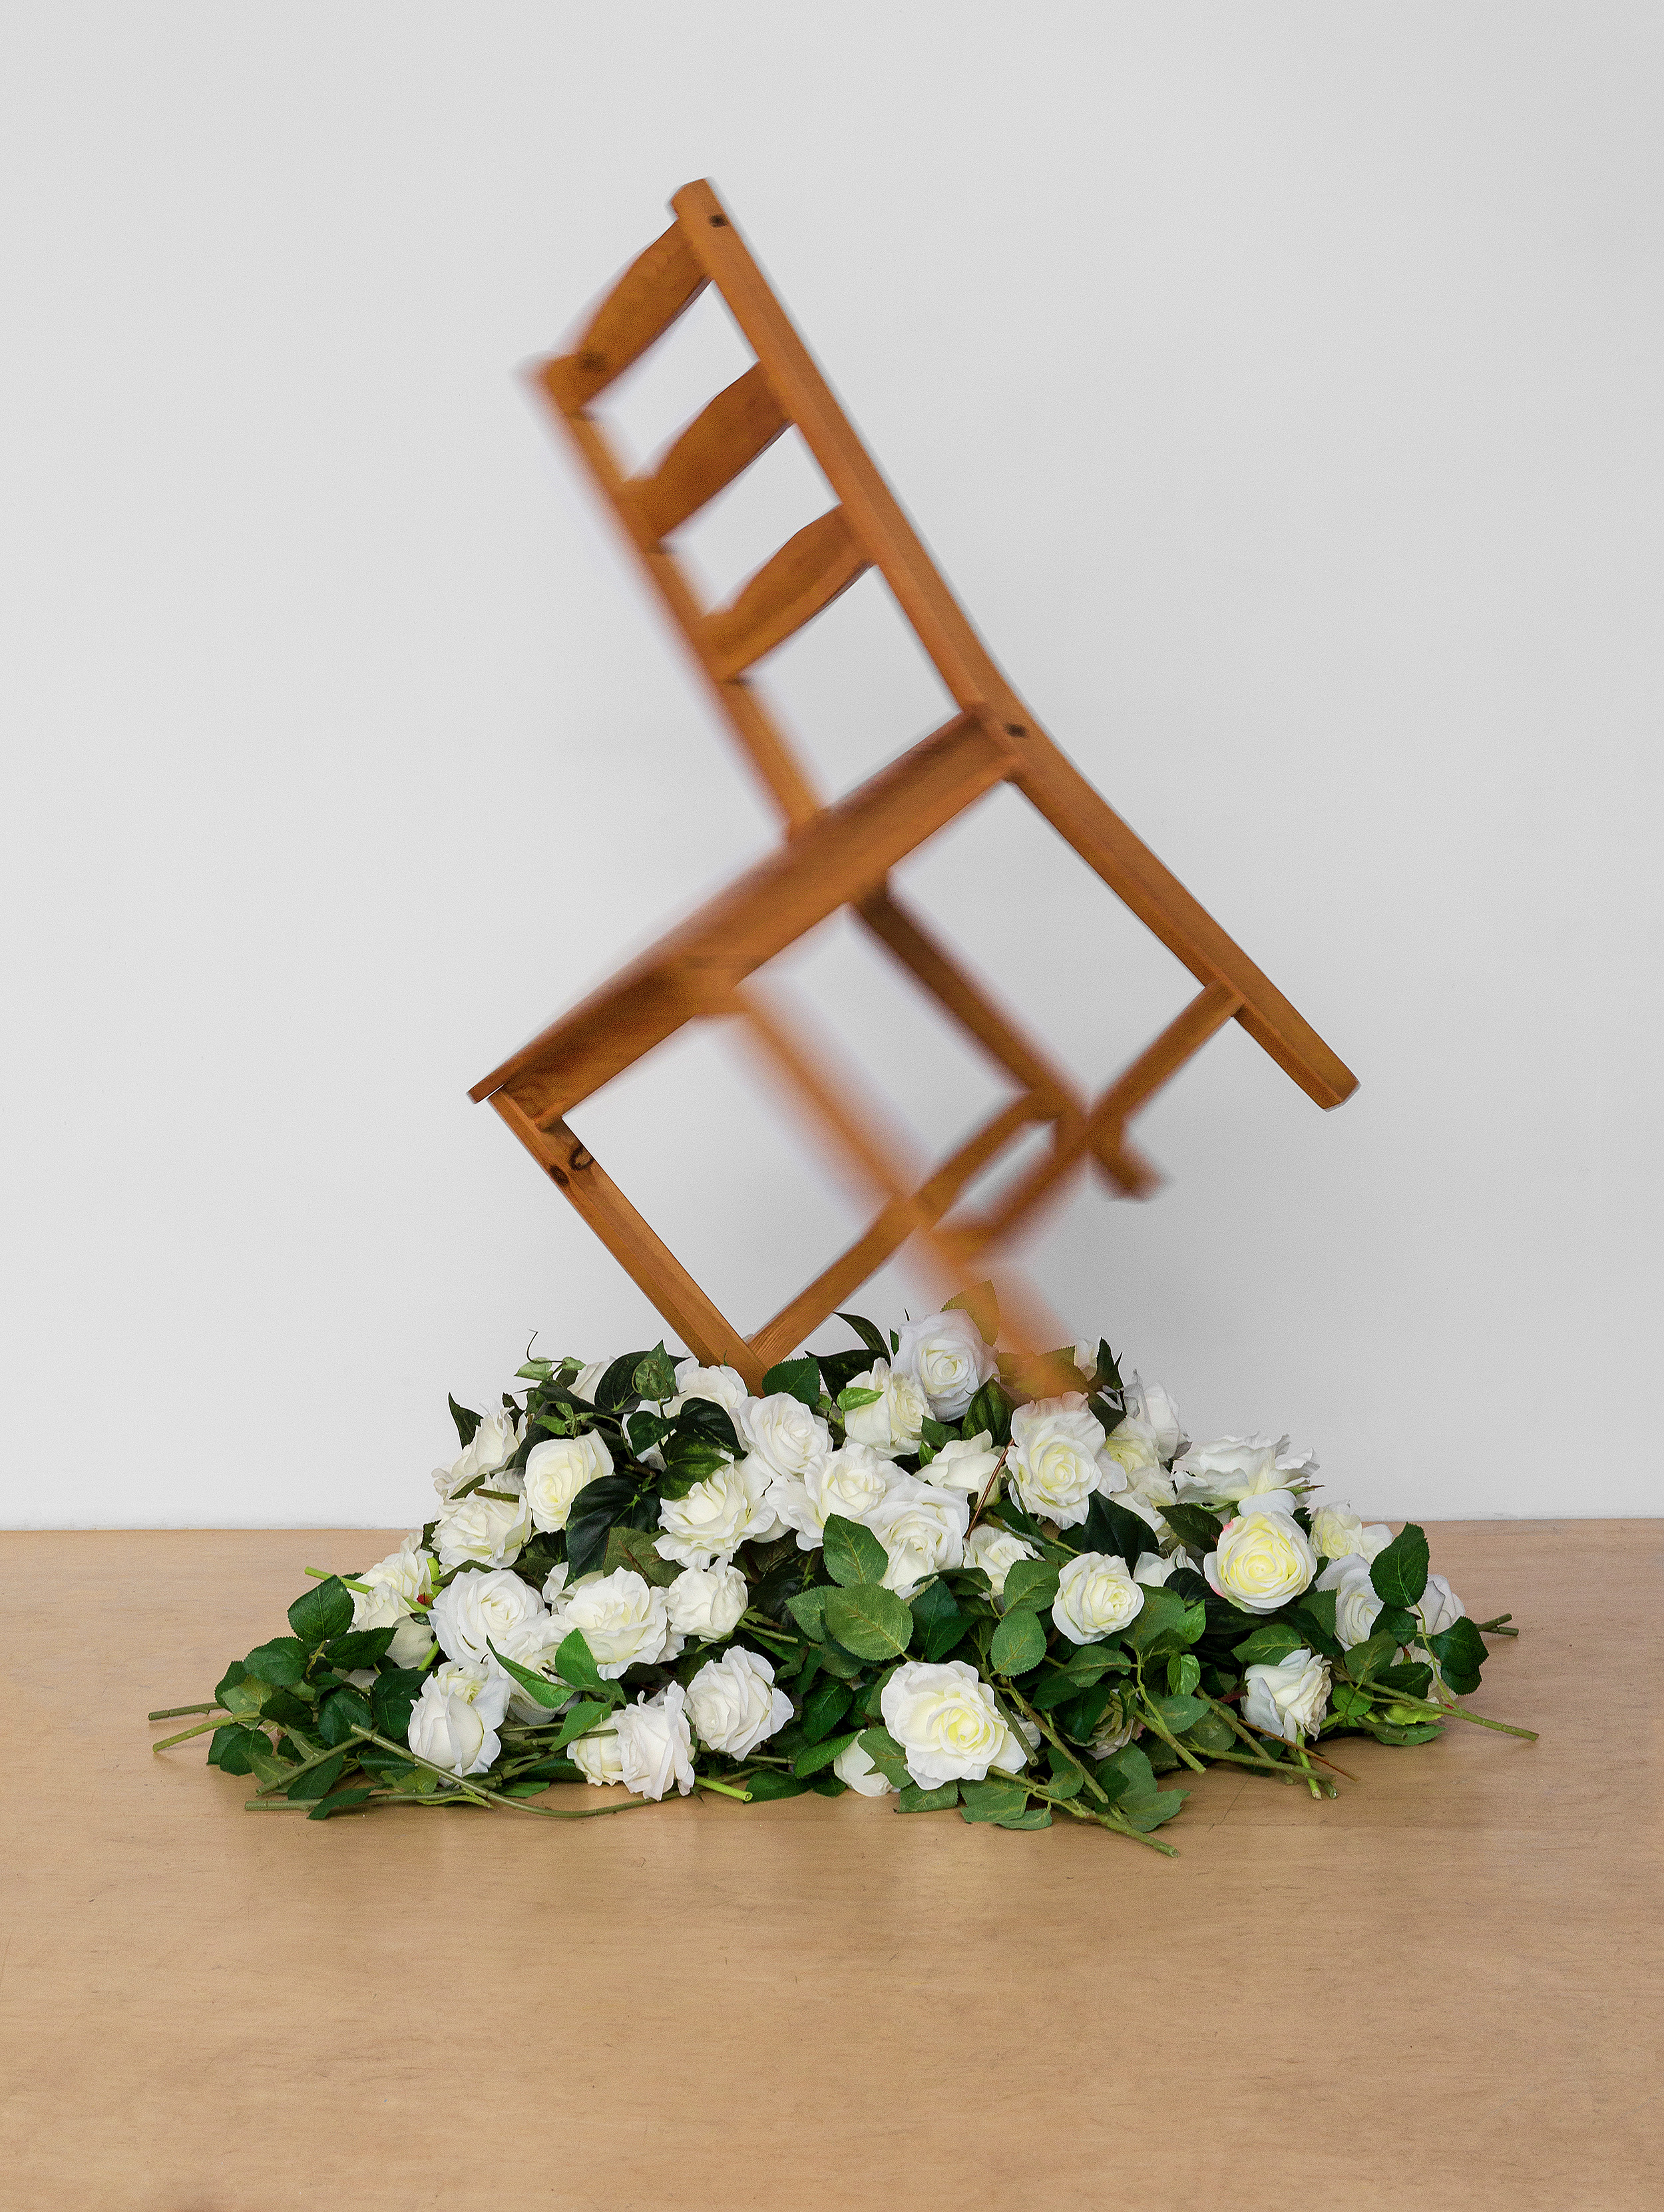 - Untitled (Follow The Leader), 2018Ikea Wooden Chair, White Roses, Motor, ElectronicsThis piece consists of a wooden chair endlessly rotating atop a bed of white roses. Evoking a subversive yet macabre scene, this piece questions the permanence and futile nature of an inanimate object through personification. Over the course of an exhibition, the live roses will wither and eventually die.Link to Video